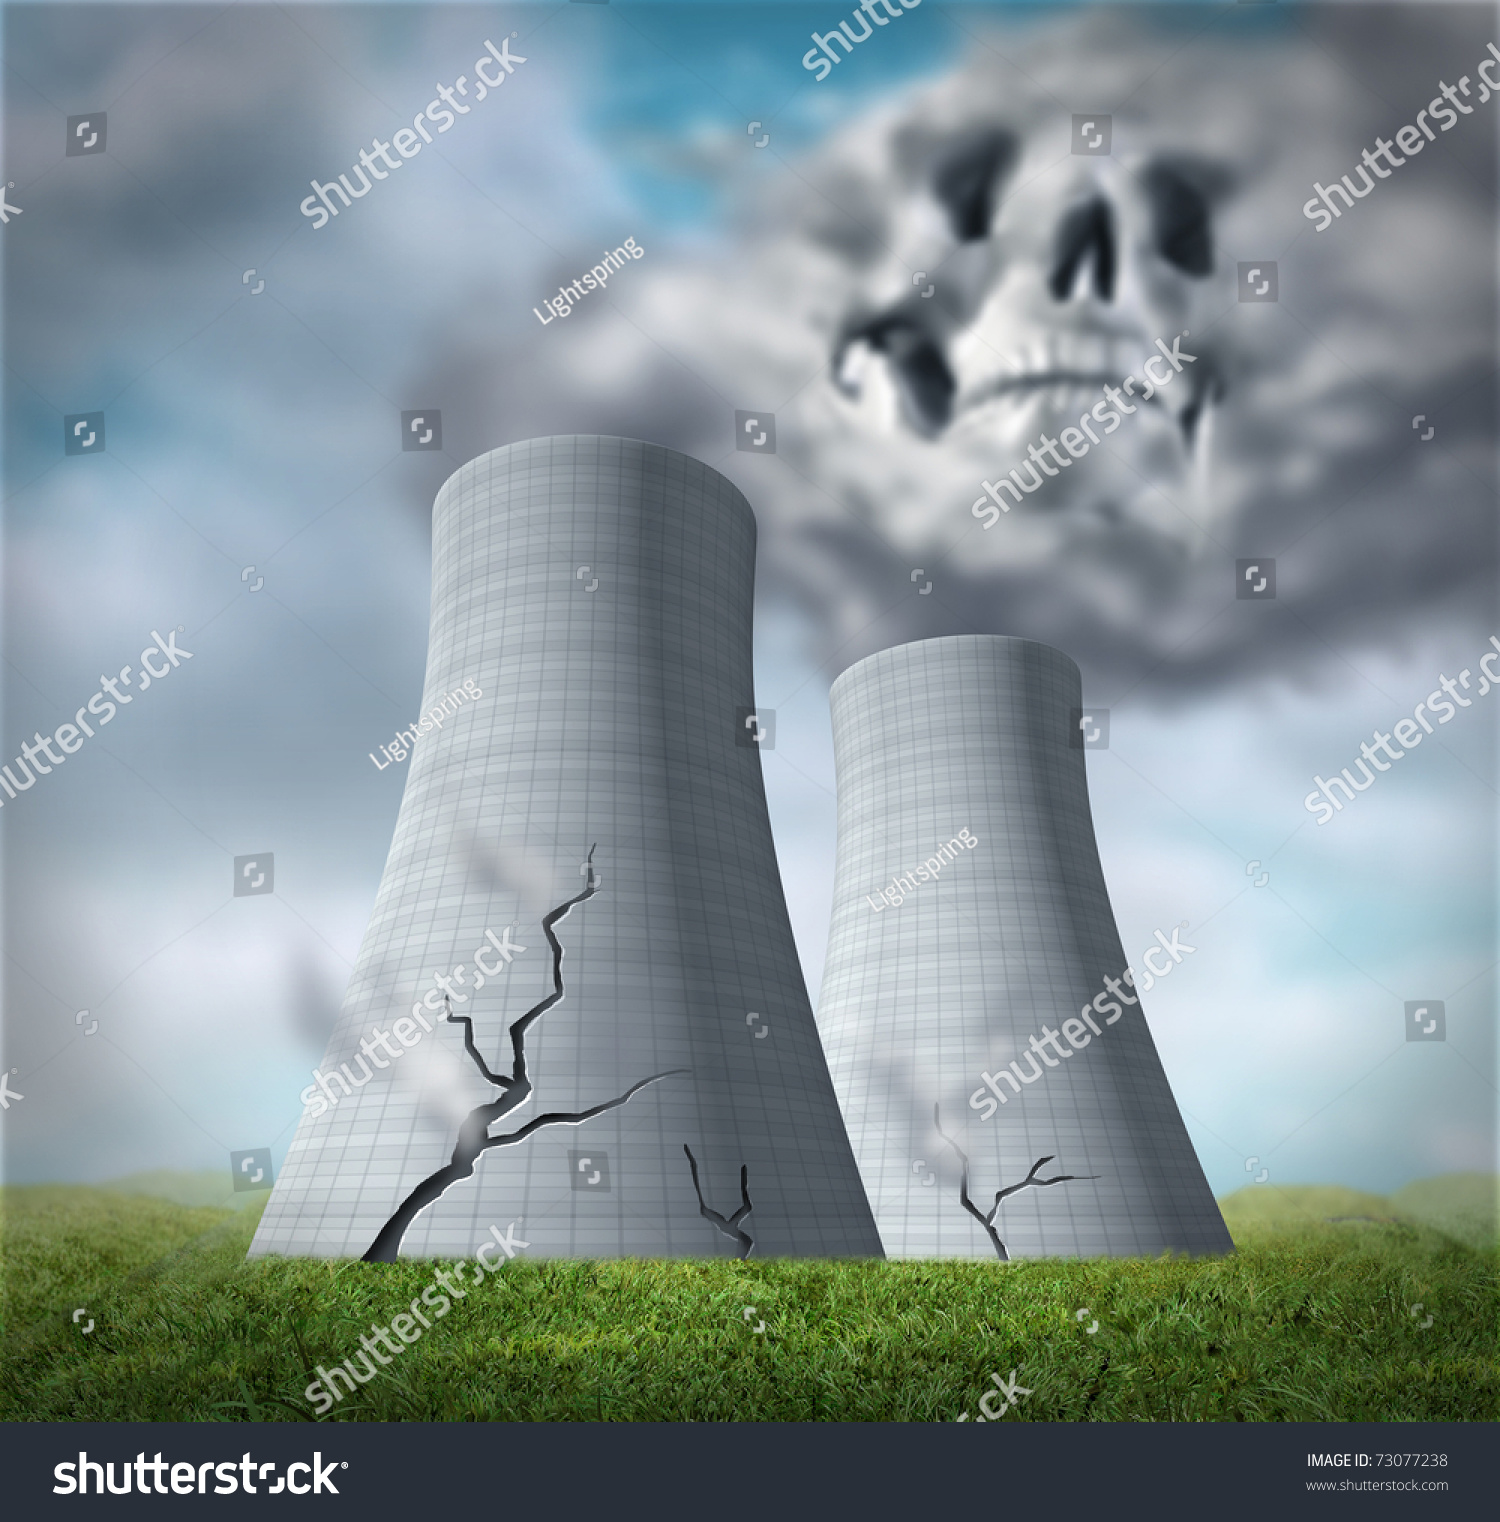 Nuclear Reactor Meltdown Disaster Symbol Represented Stock